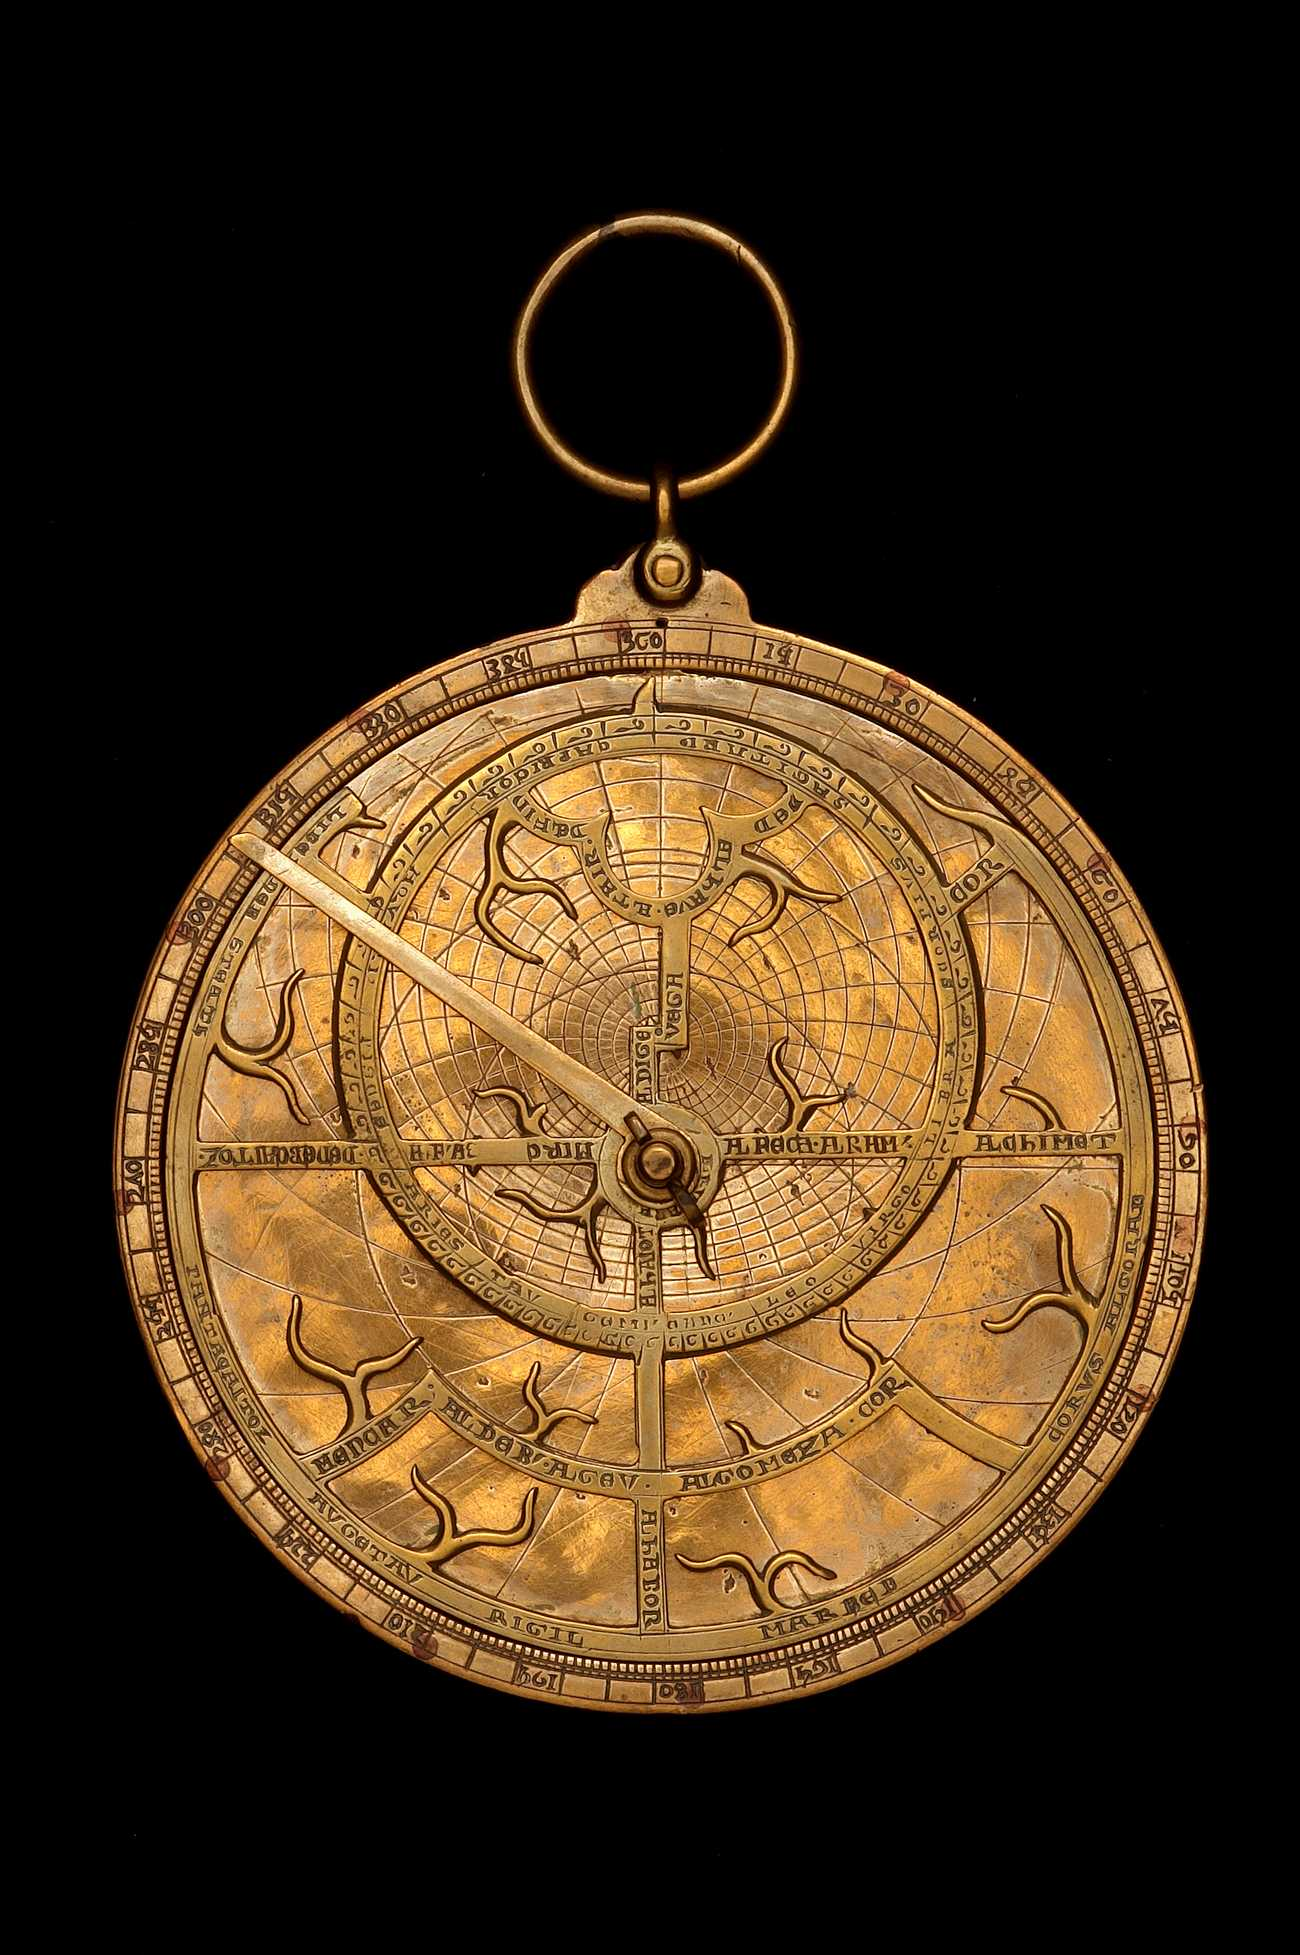 Astrolabe Image Report Inventory Number 52473: Astrolabe Report (inventory Number 36338